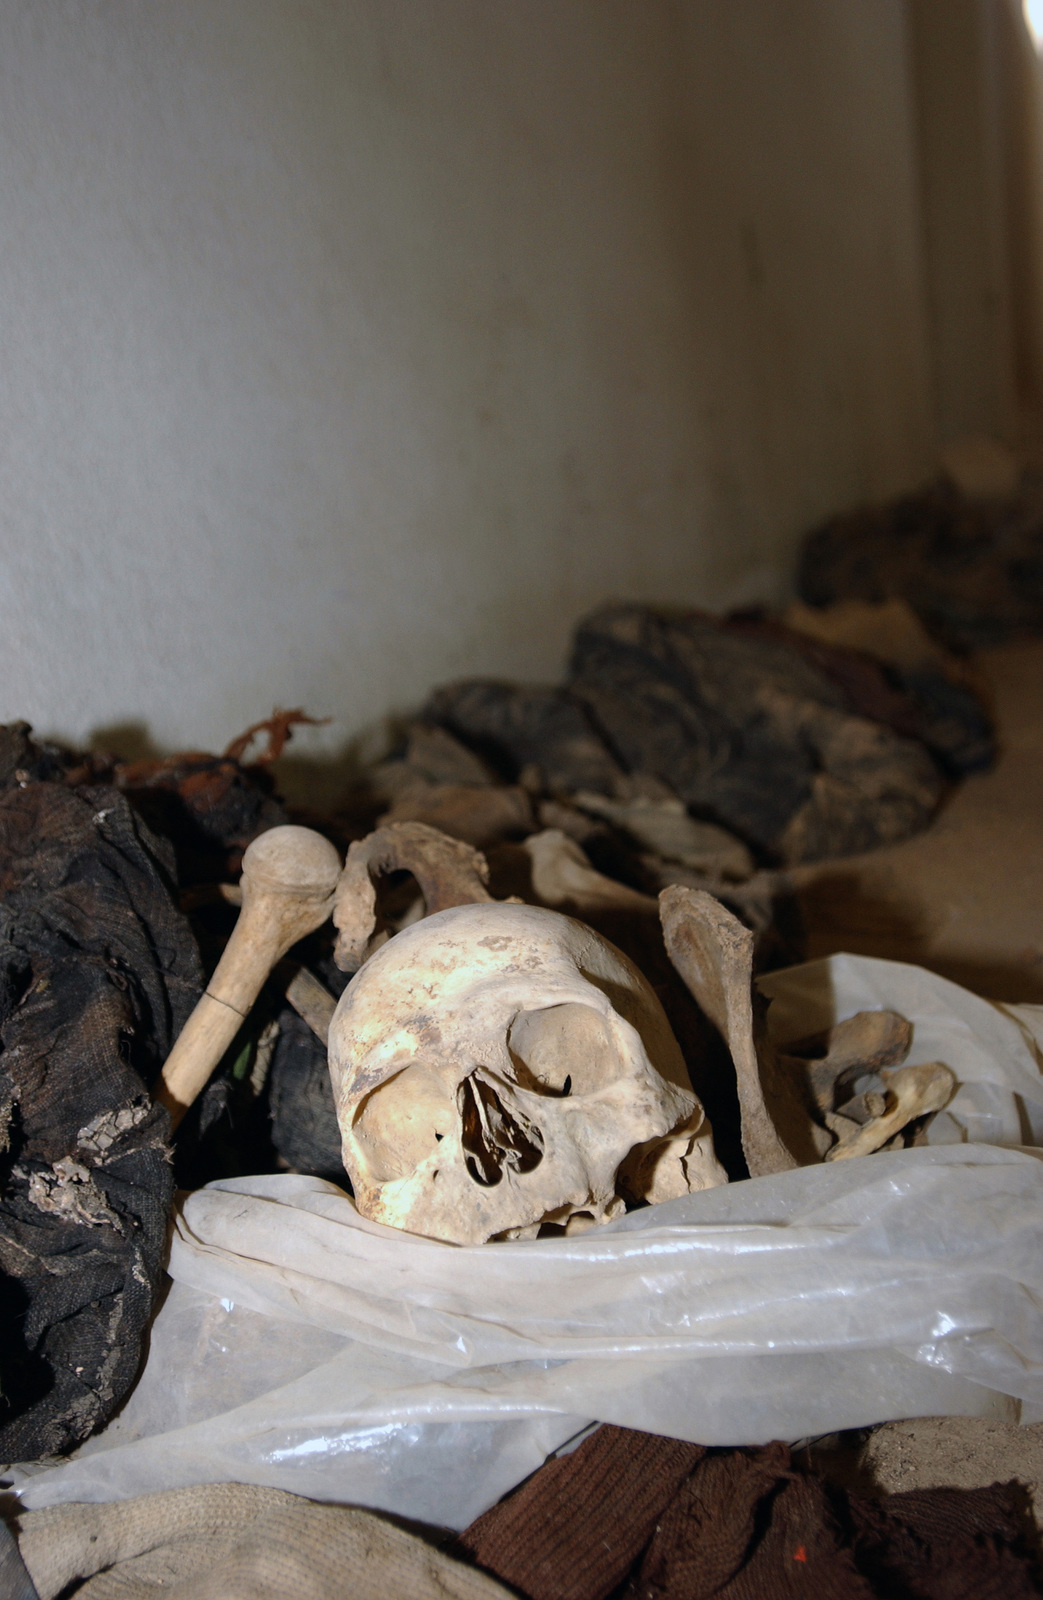 The unidentified human skeletal remains of eighty-two victims sit in a morgue in Azadi hospital in Kirkuk, Iraq, The remains were brought in from a mass grave just outside the hospital's property, and are being held there for further investigation, by US Army (USA) Special Agents assigned to the 307th Criminal Investigations Division, during Operation IRAQI FREEDOM